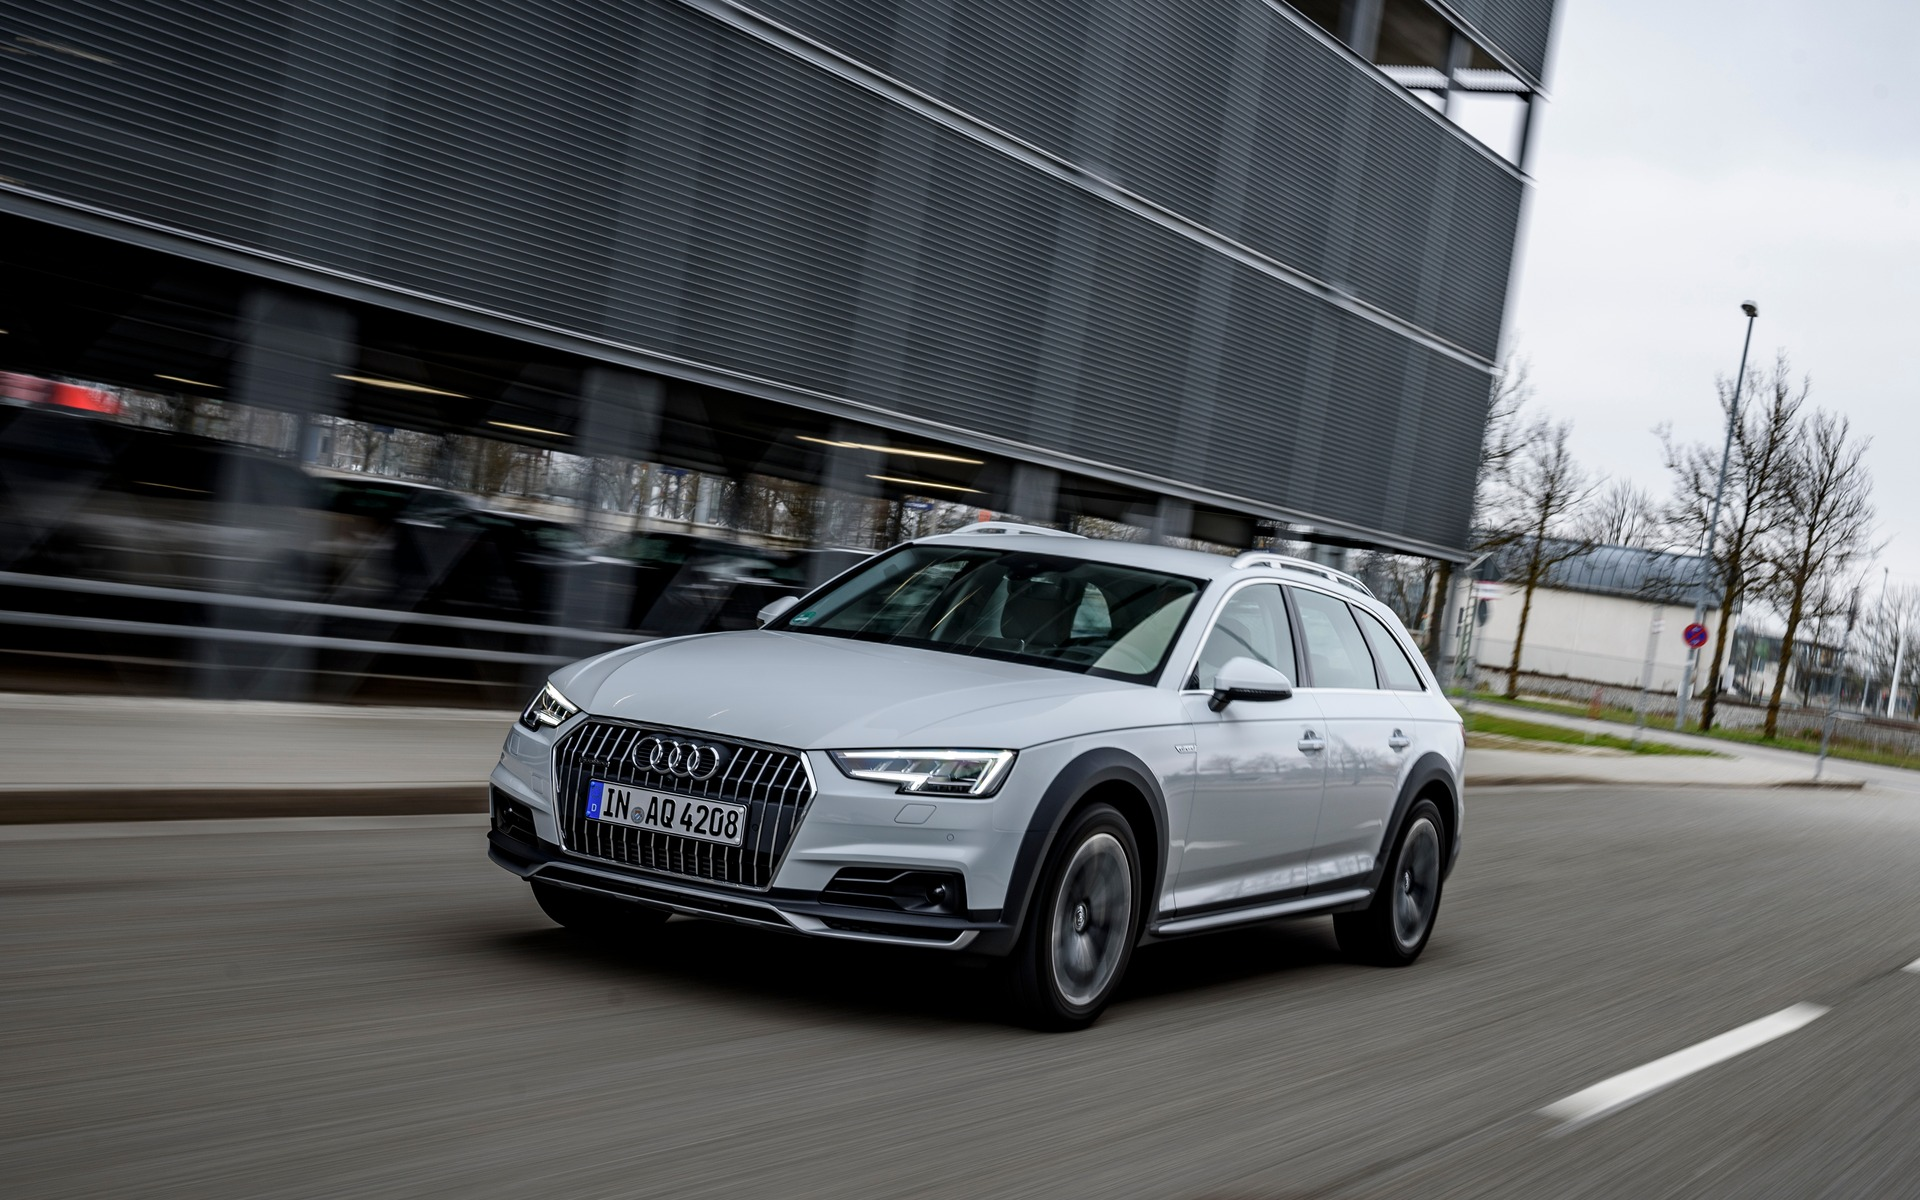 2017 Audi A4 allroad: The SUV alternative for Connoisseurs - 2/21